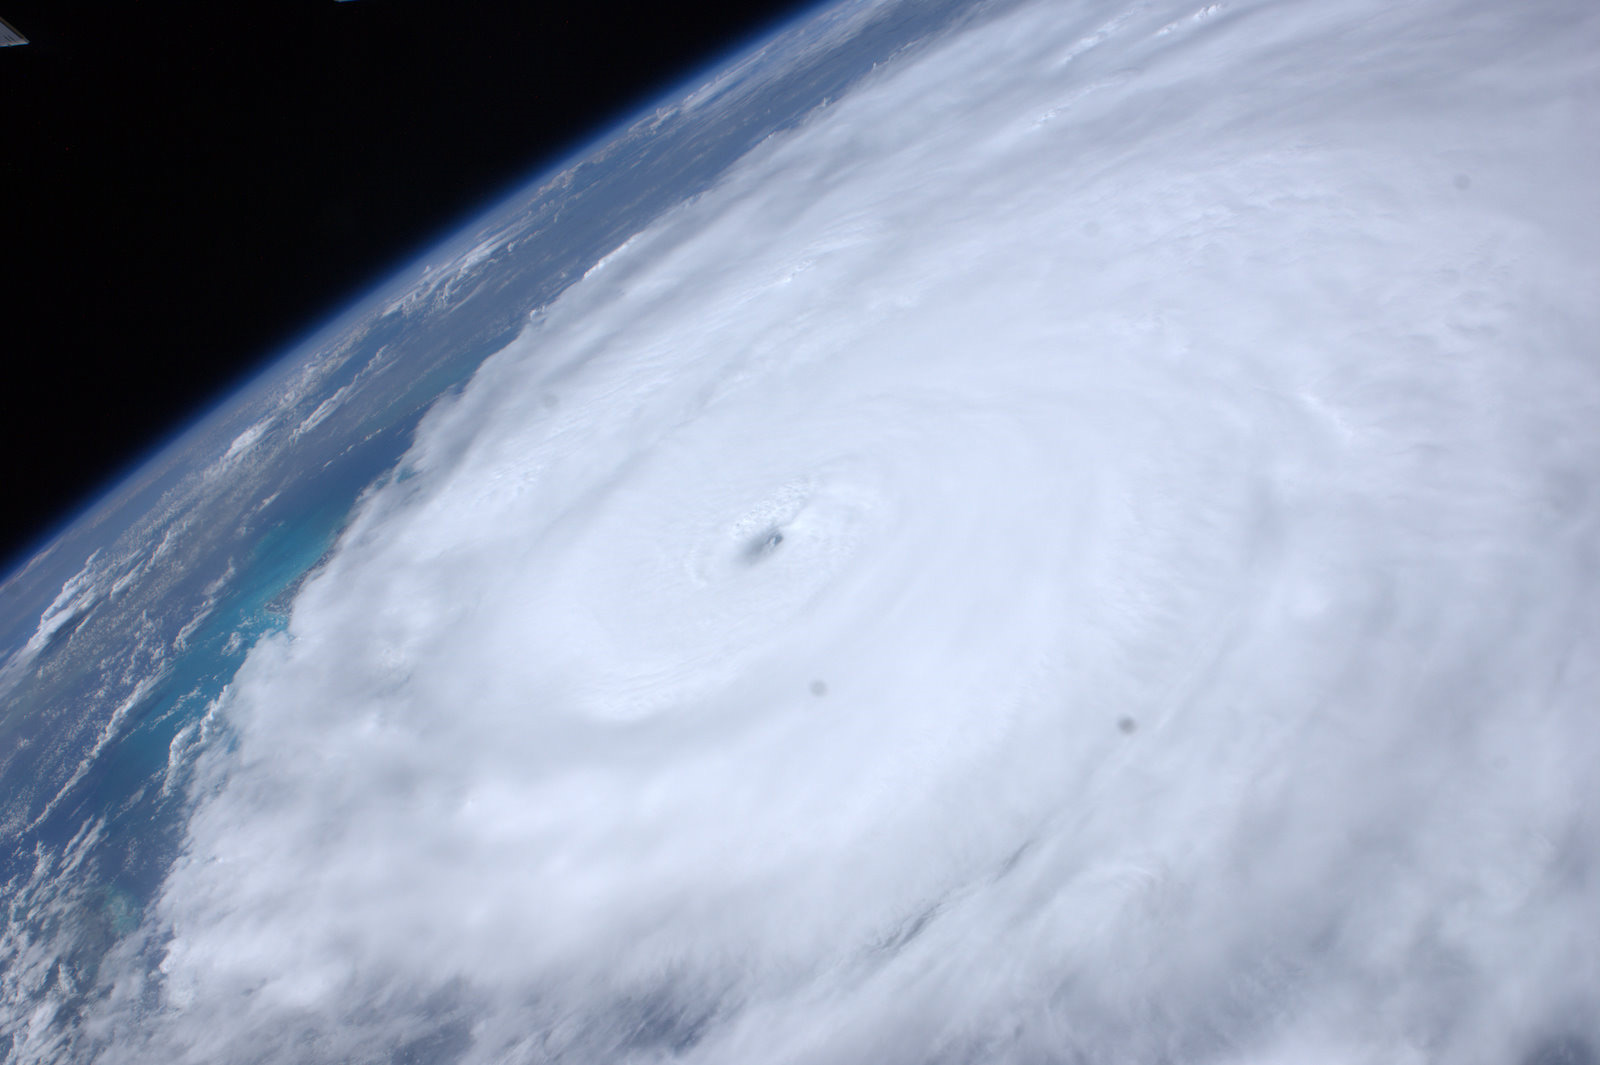 Astronauts Watch Hurricane Irene's Fury from Above